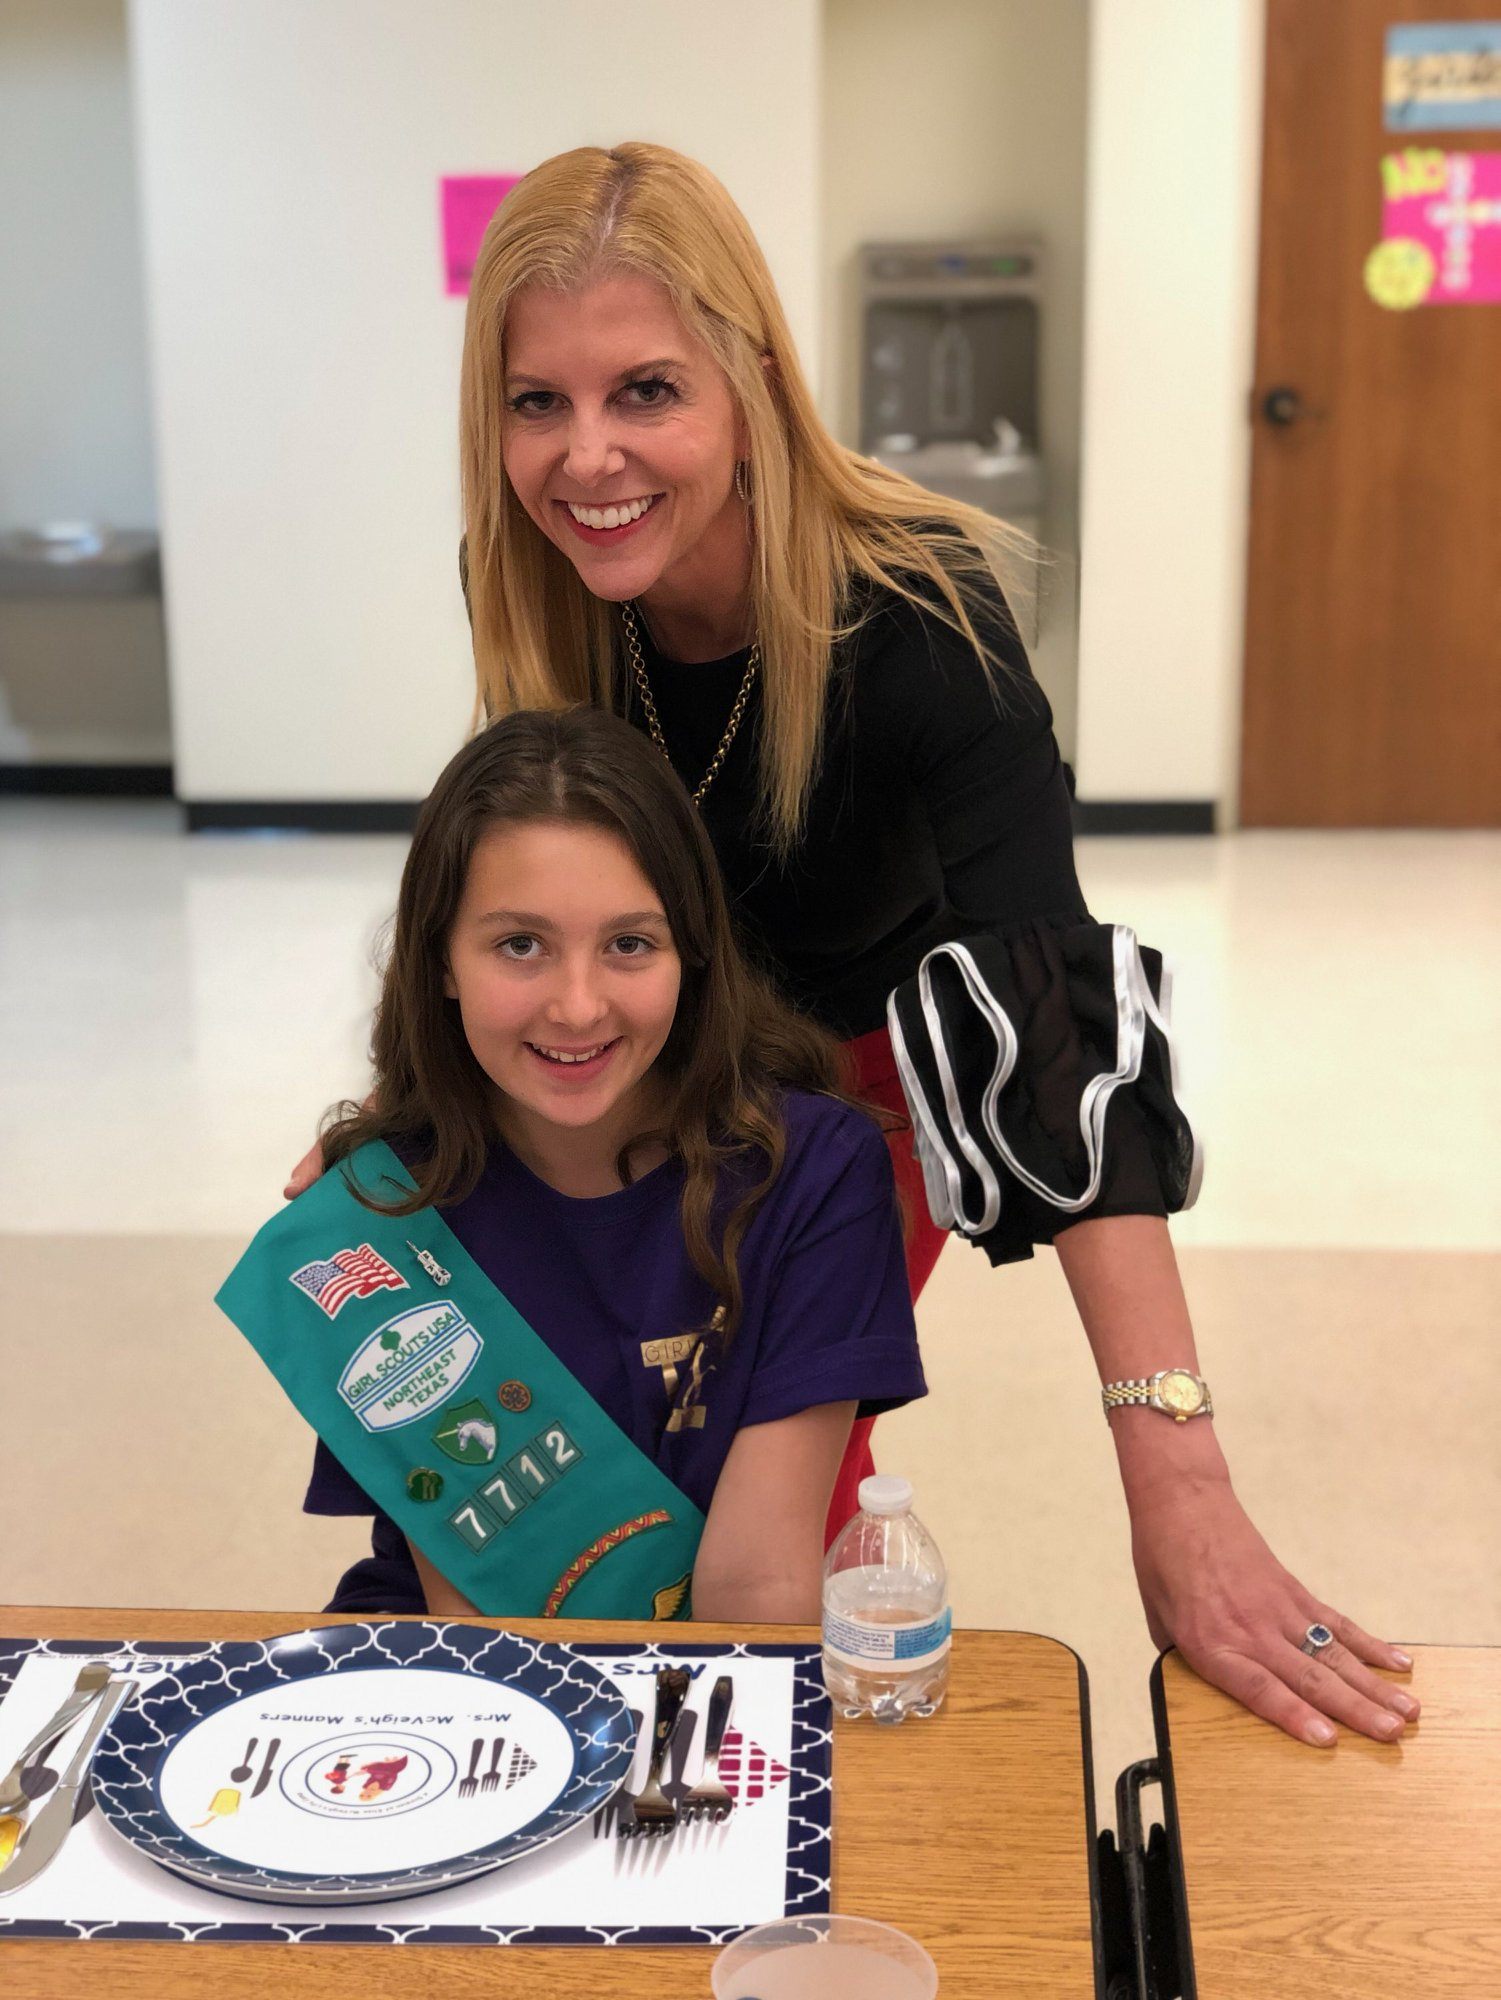 Elise McVeigh teaches a one-hour class to Girl Scout troops. This class will help troop members earn their Etiquette Badge.